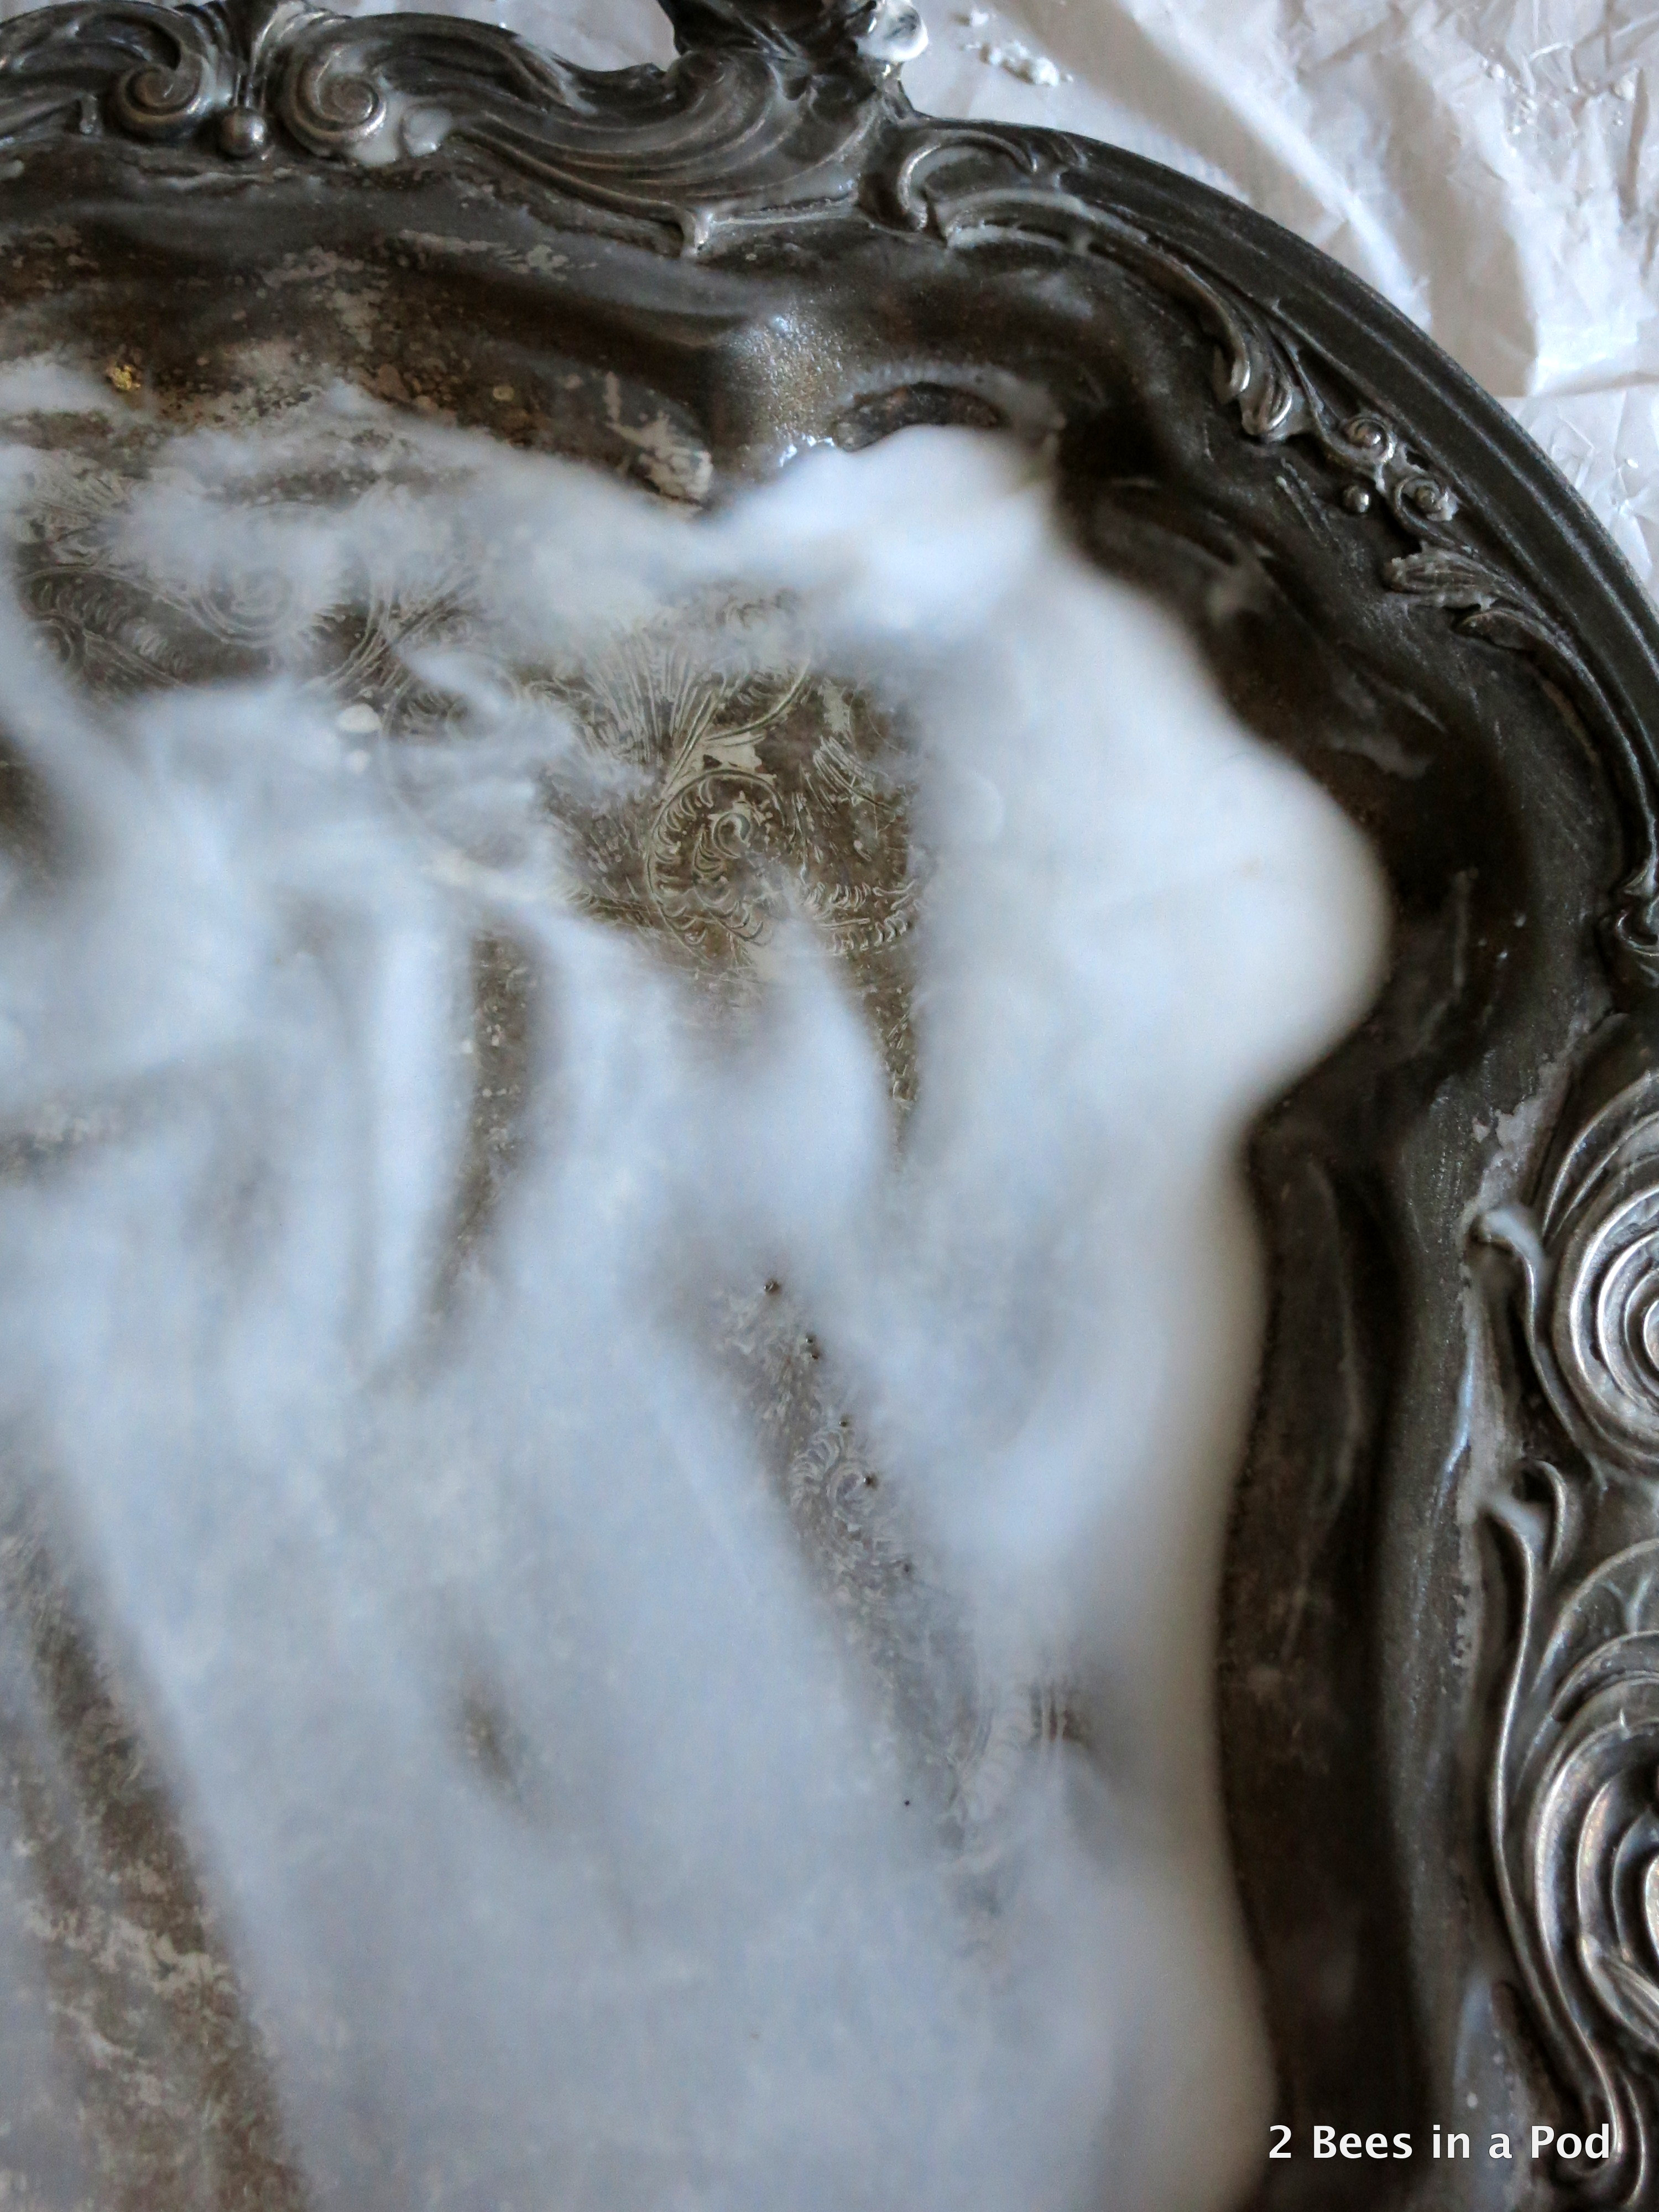 How to clean your silver platter using baking soda